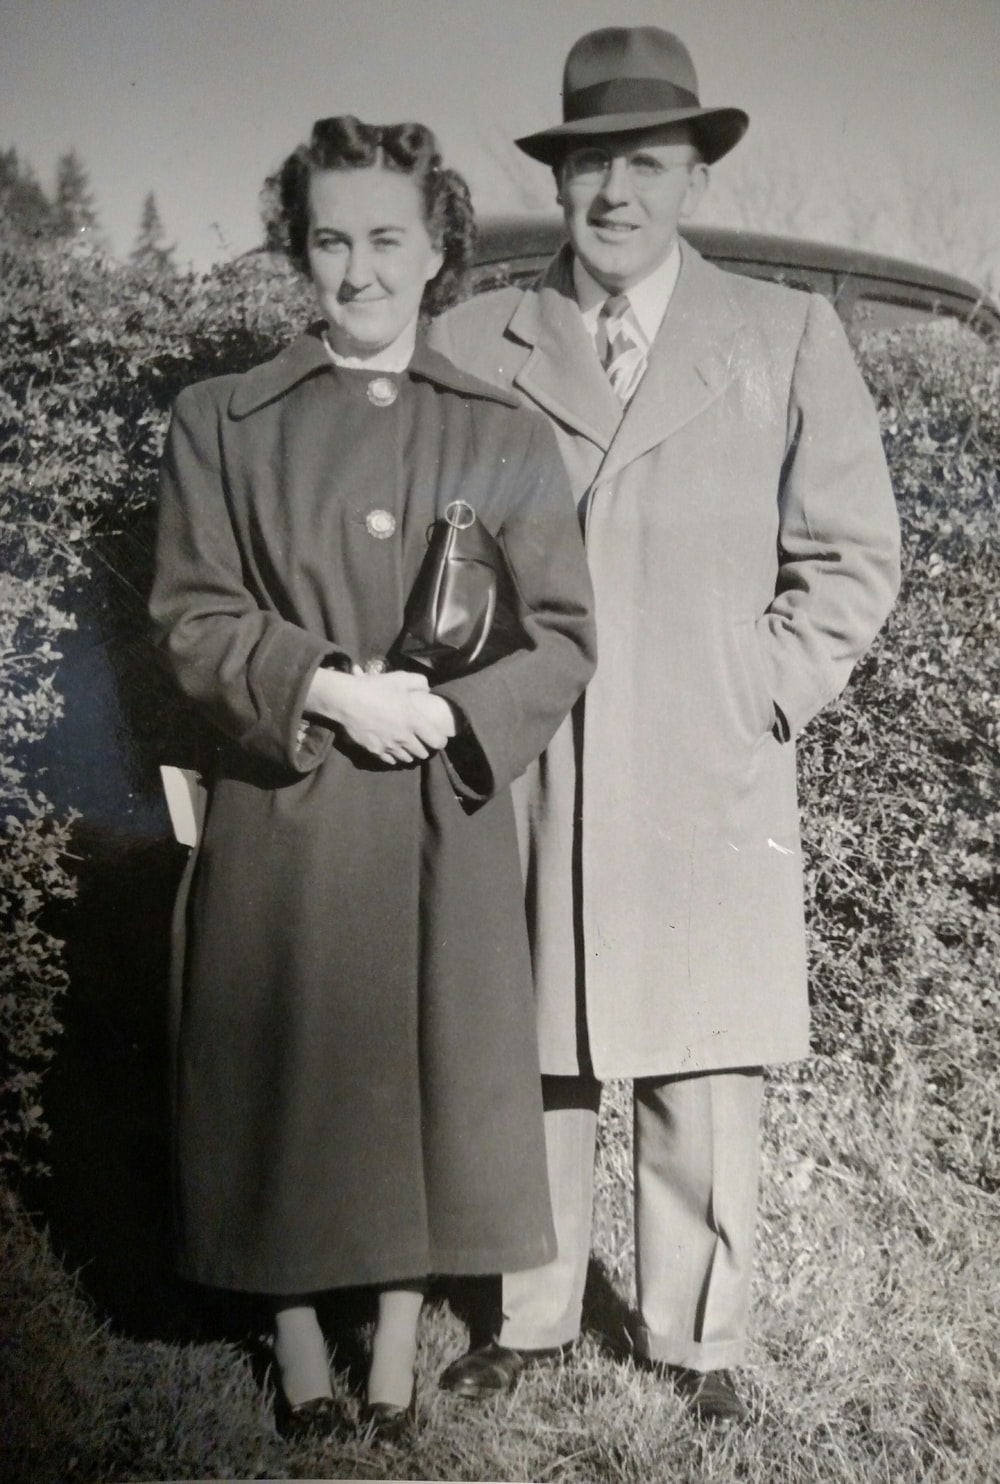 grayscale photography of man and woman wearing coat